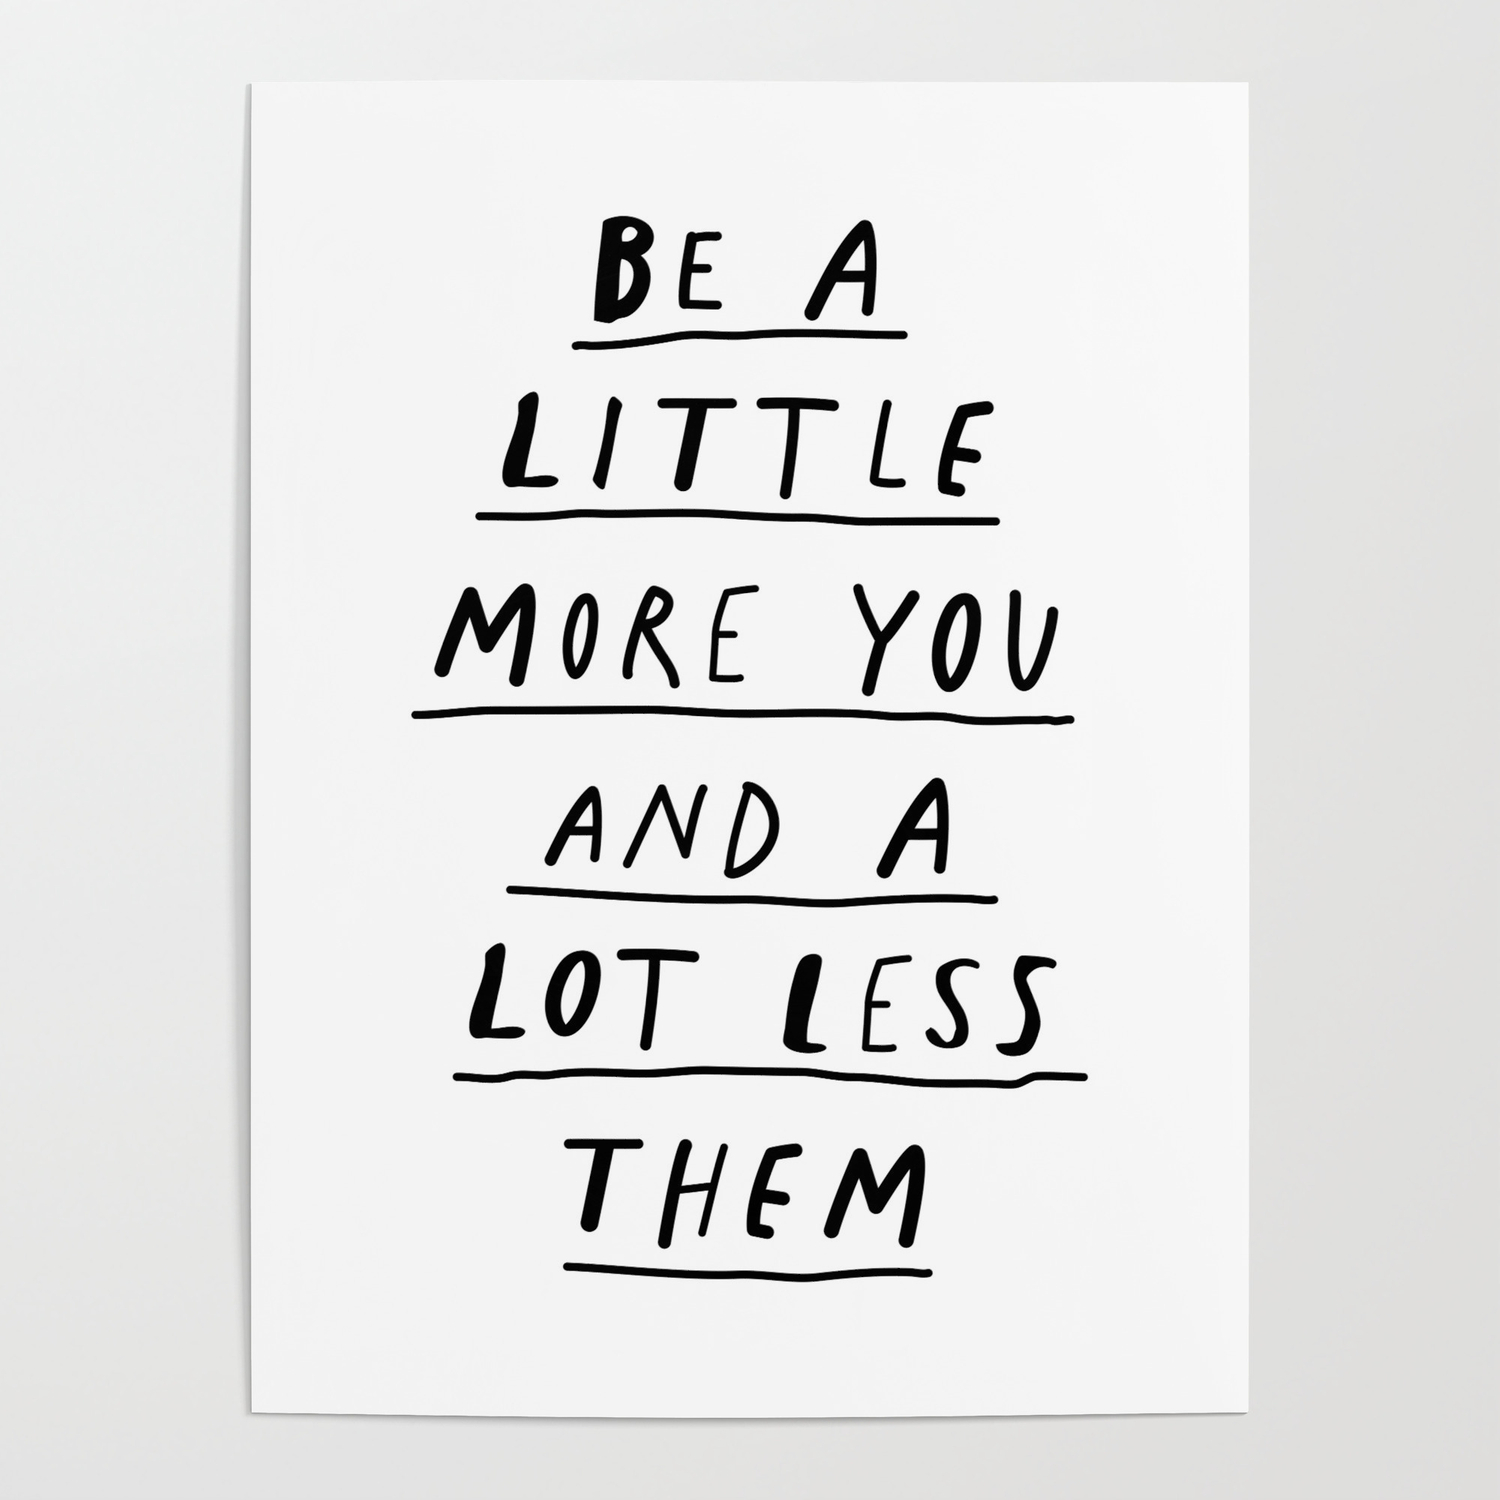 Be a little more you and a lot less them black and white typography quote design poster poster